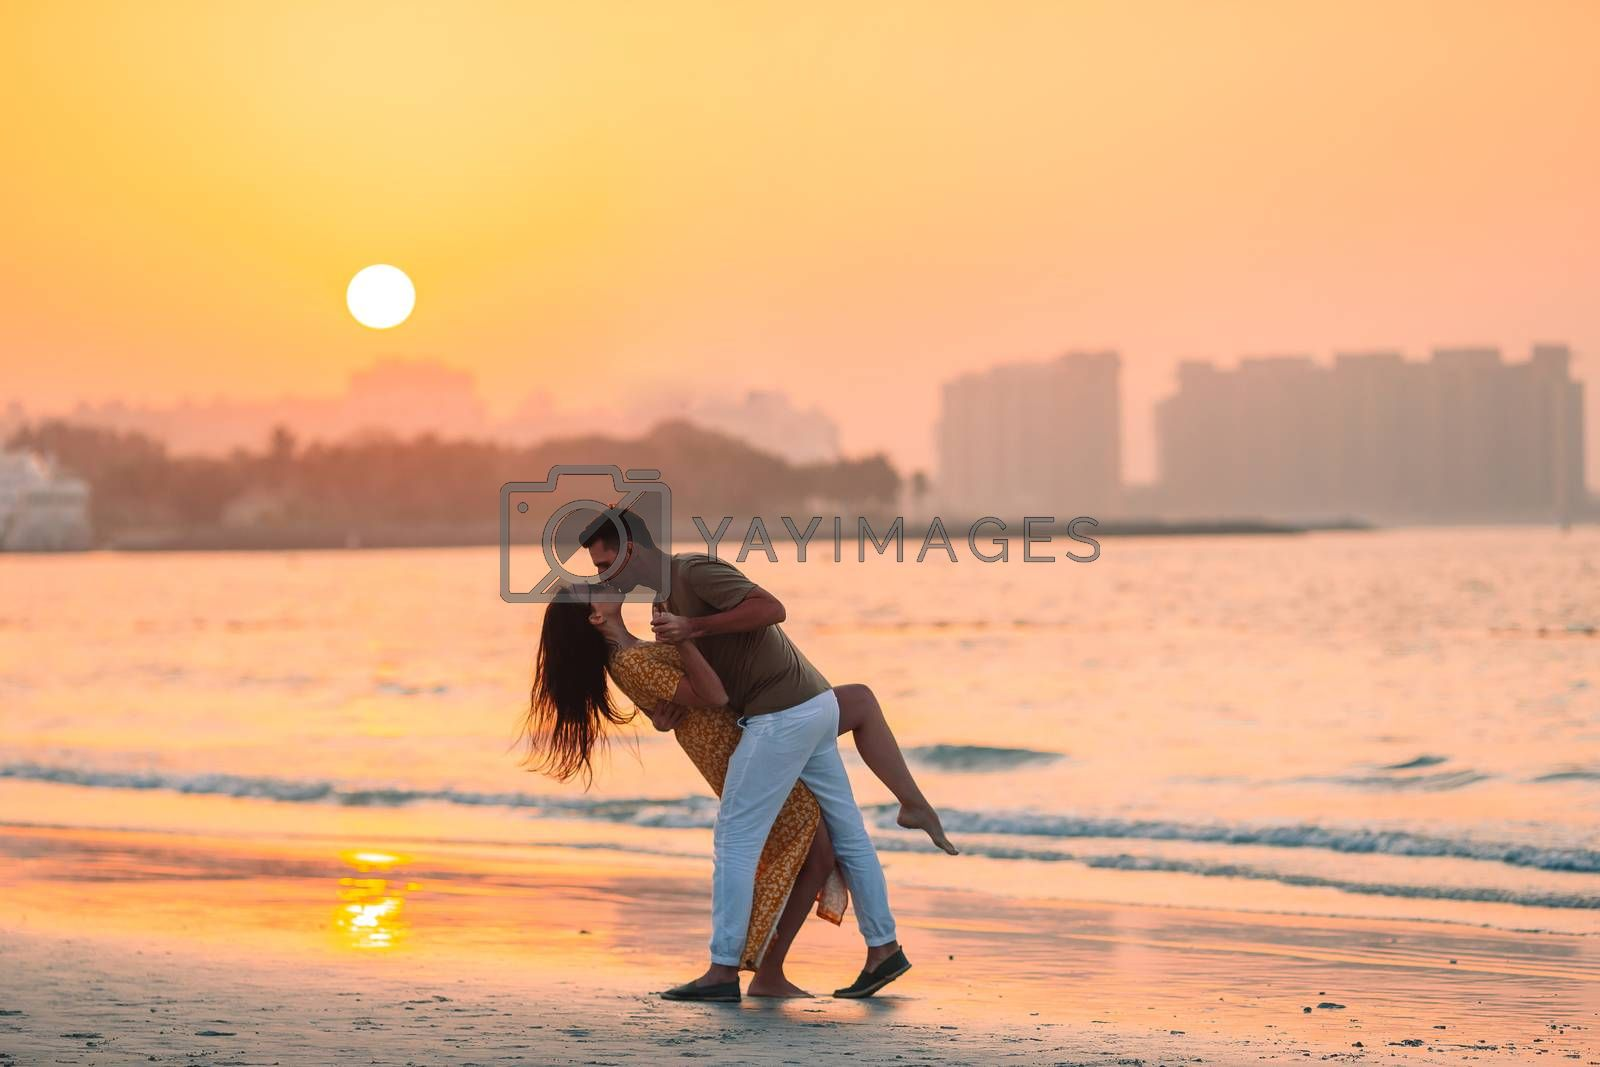 Family vacation. Young couple enjoy beach at sunset kissing